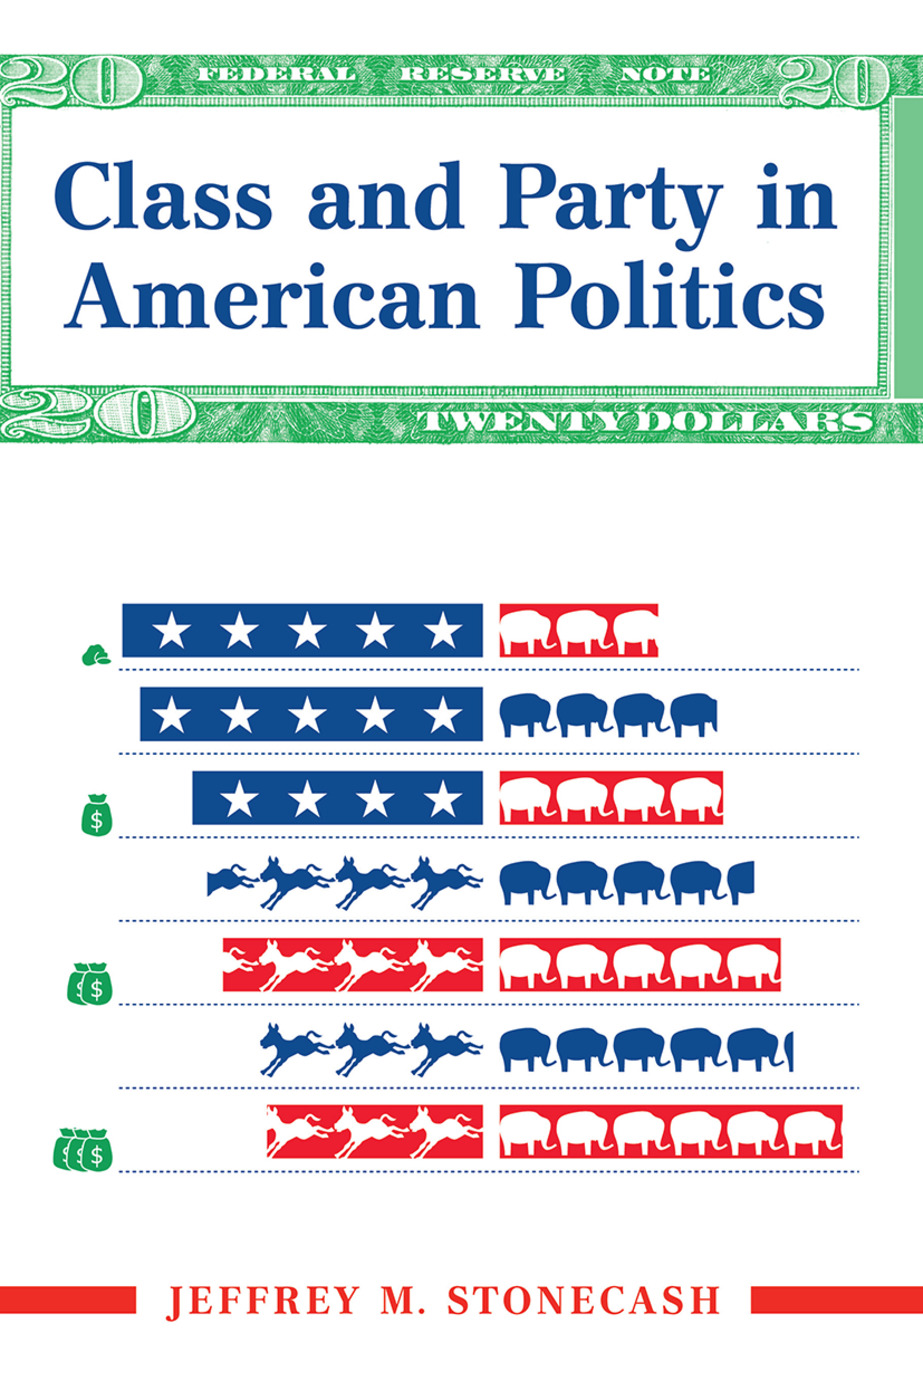 Class And Party In American Politics book cover